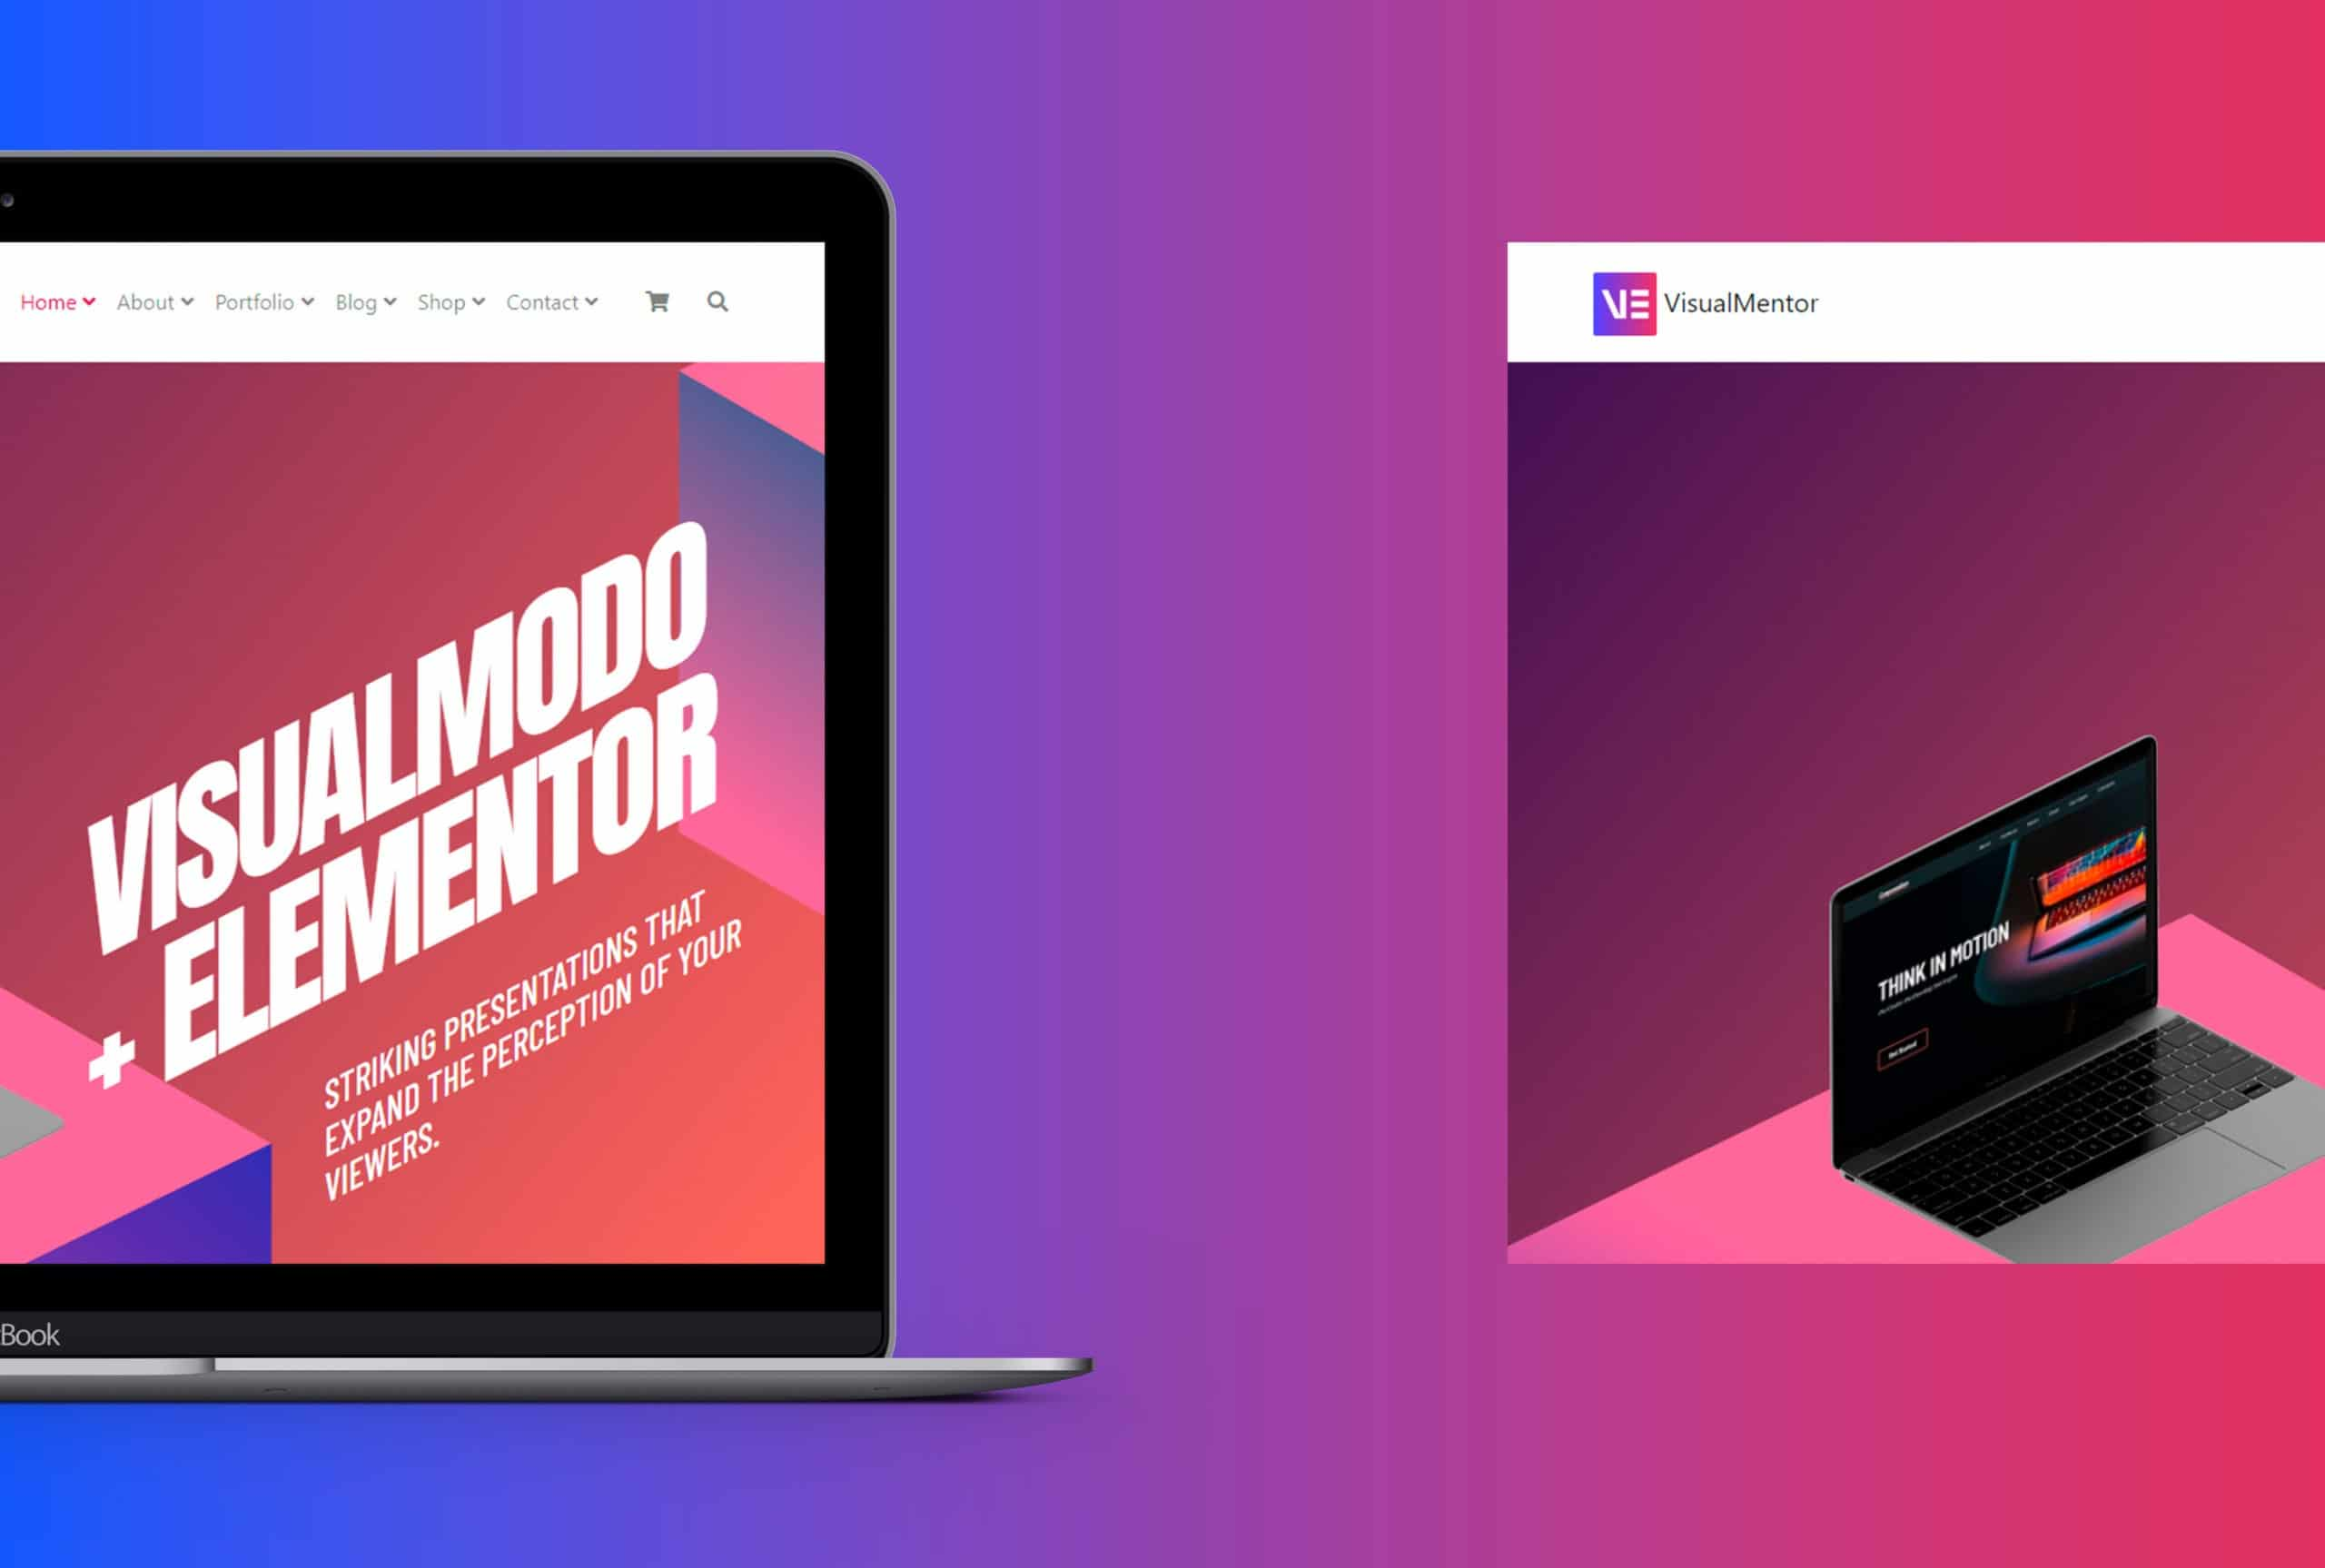 VisualMentor Premium Elementor WordPress Theme - Laptop View